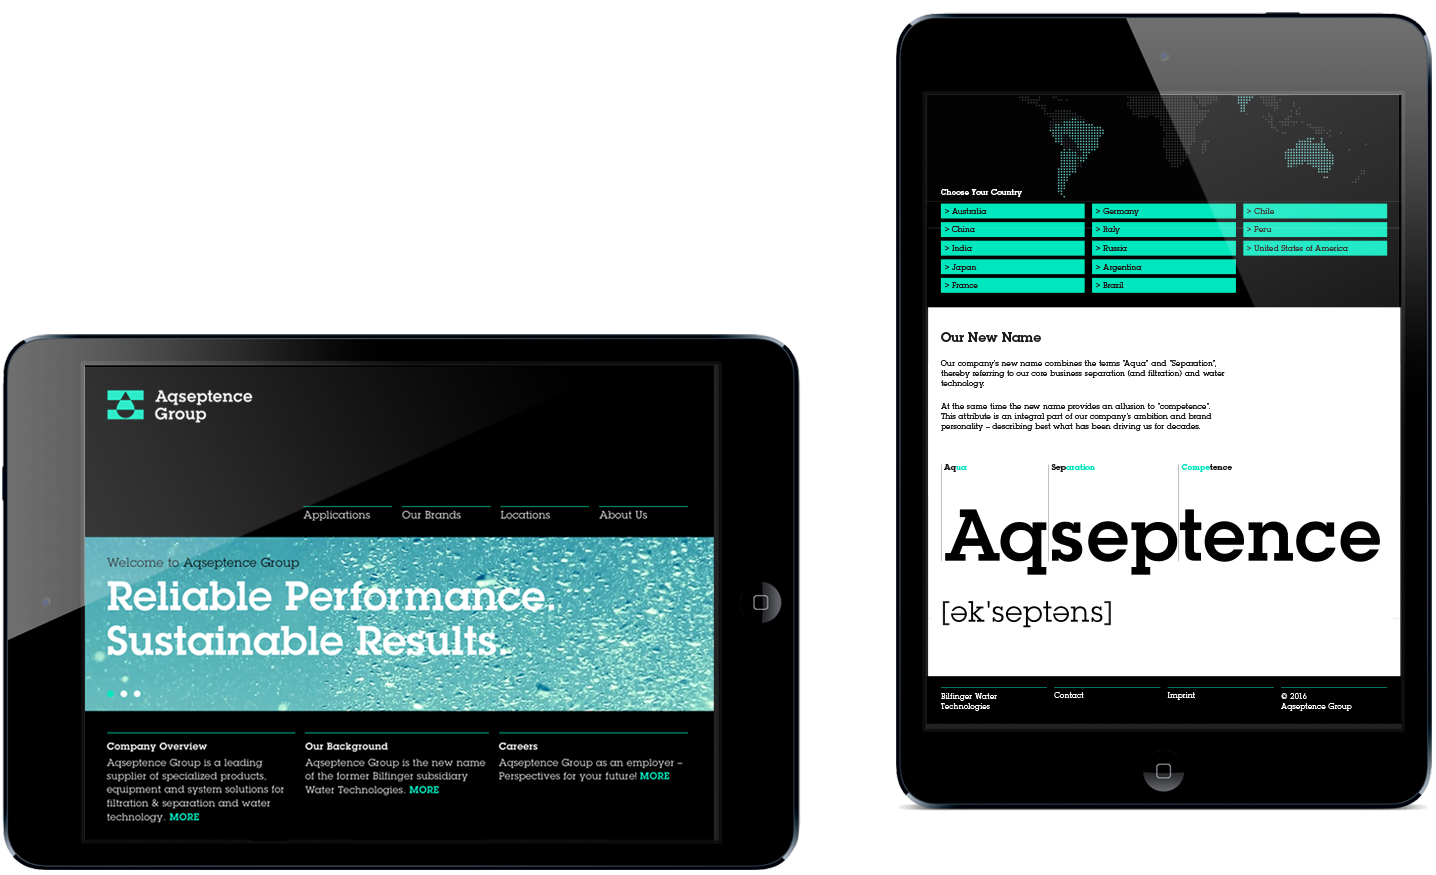 Aqseptence Website auf iPad